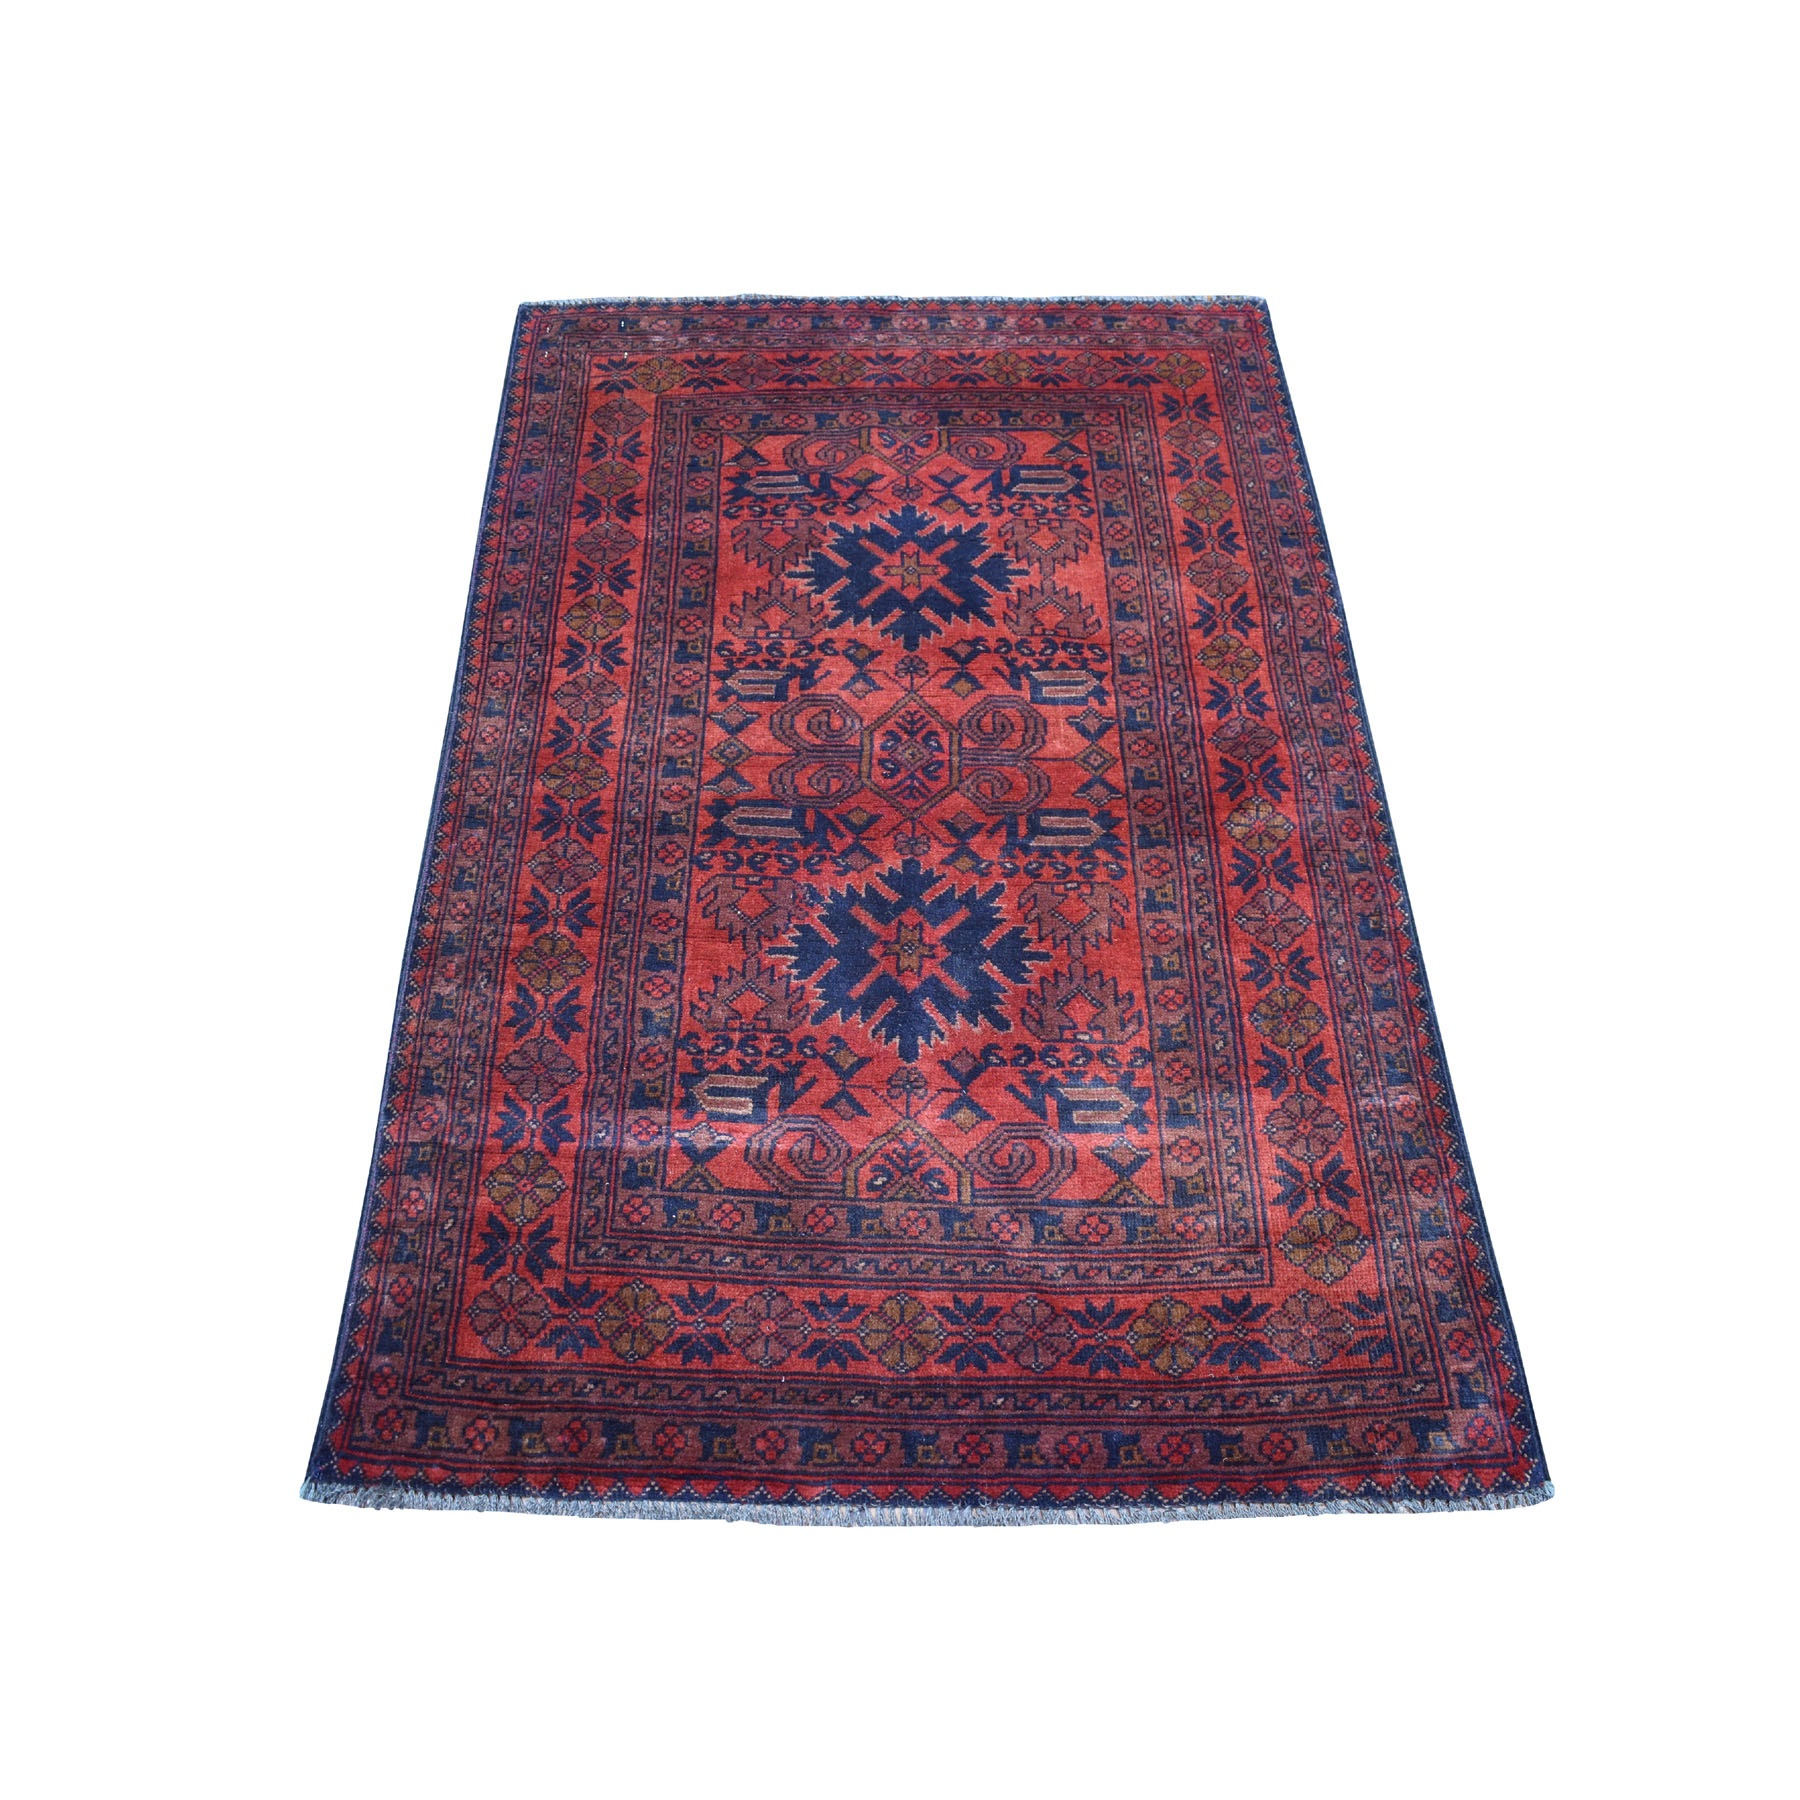 "3'x4'8"" Deep and Saturated Red Tribal Afghan Andkhoy Pure Wool Hand Woven Oriental Rug"